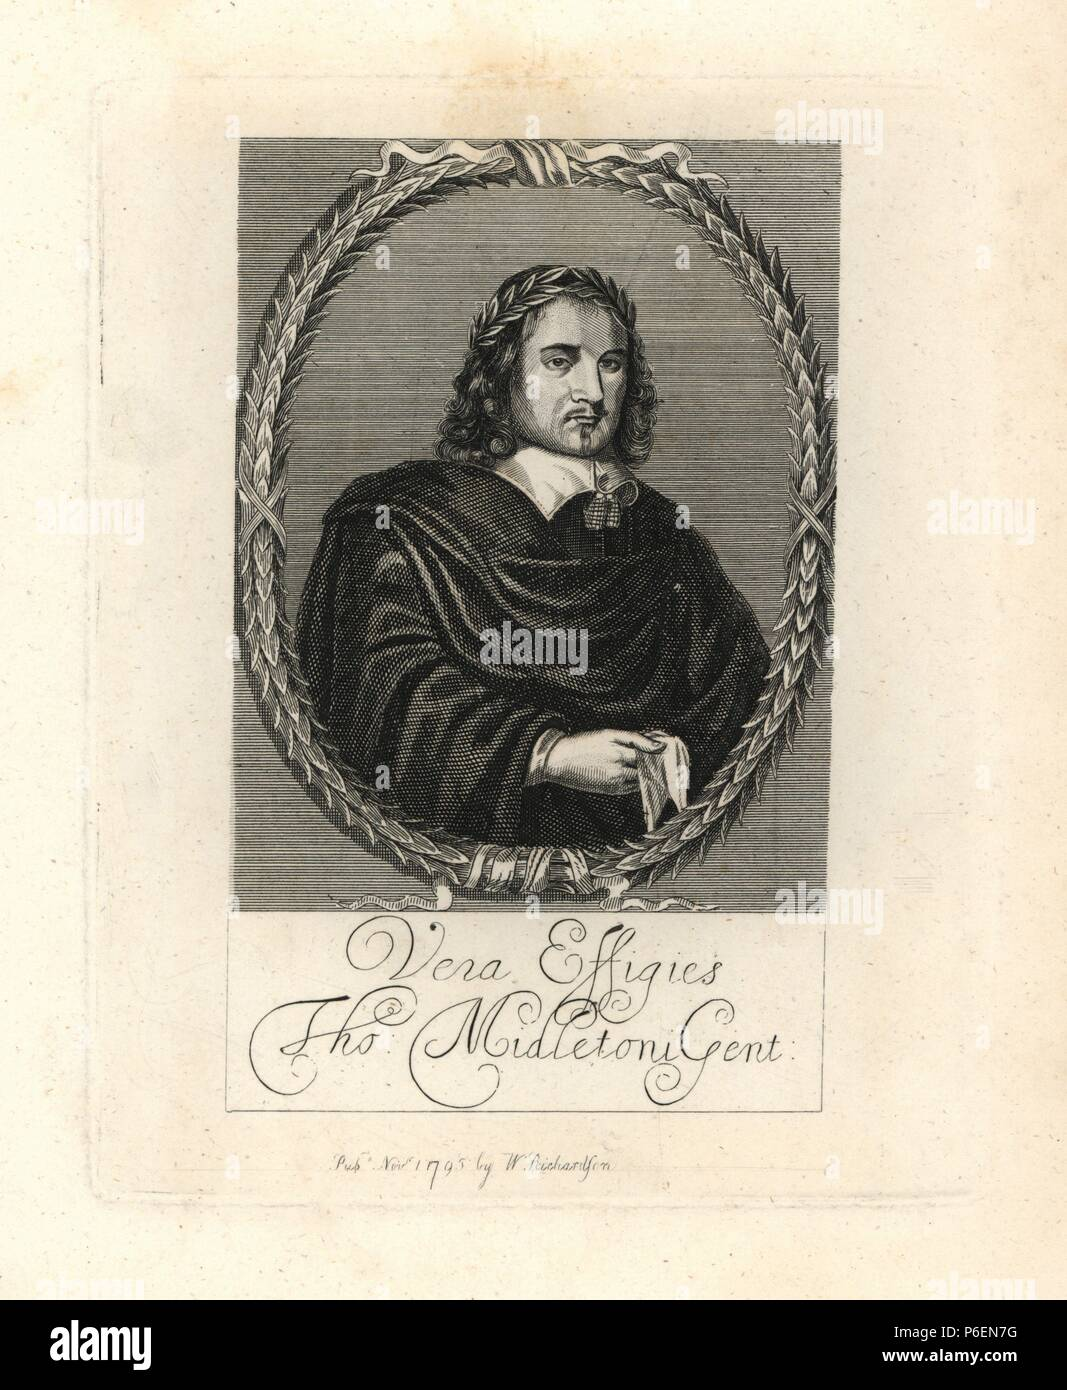 Thomas Middleton, poet. Engraved from a scarce print prefixed to his 'Plays.' Copperplate engraving from Richardson's 'Portraits illustrating Granger's Biographical History of England,' London, 1792–1812. Published by William Richardson, printseller, London. James Granger (1723–1776) was an English clergyman, biographer, and print collector. - Stock Image